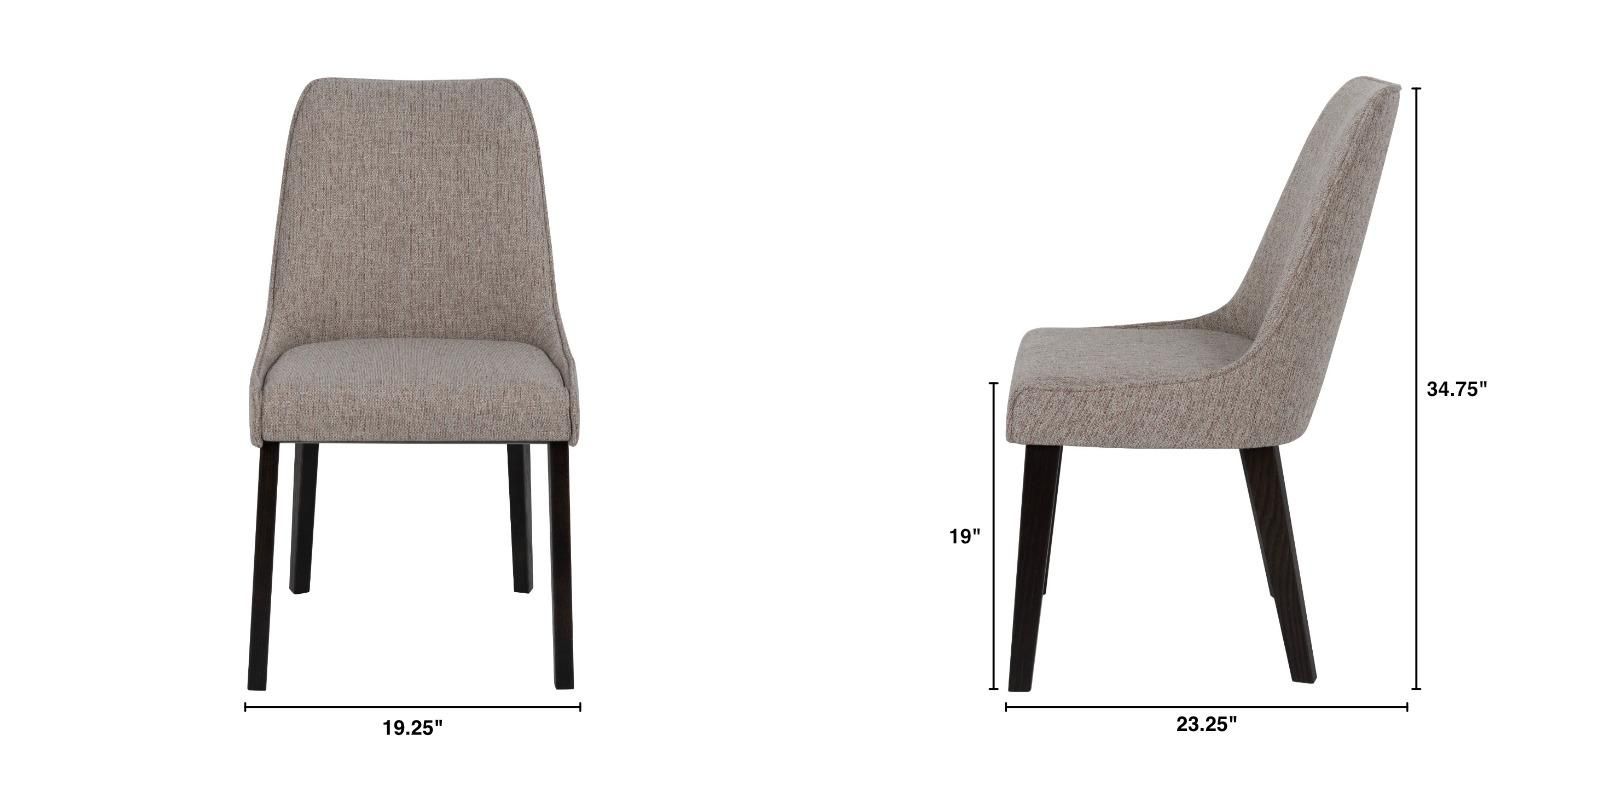 Olivia Dining Chair Dimensions